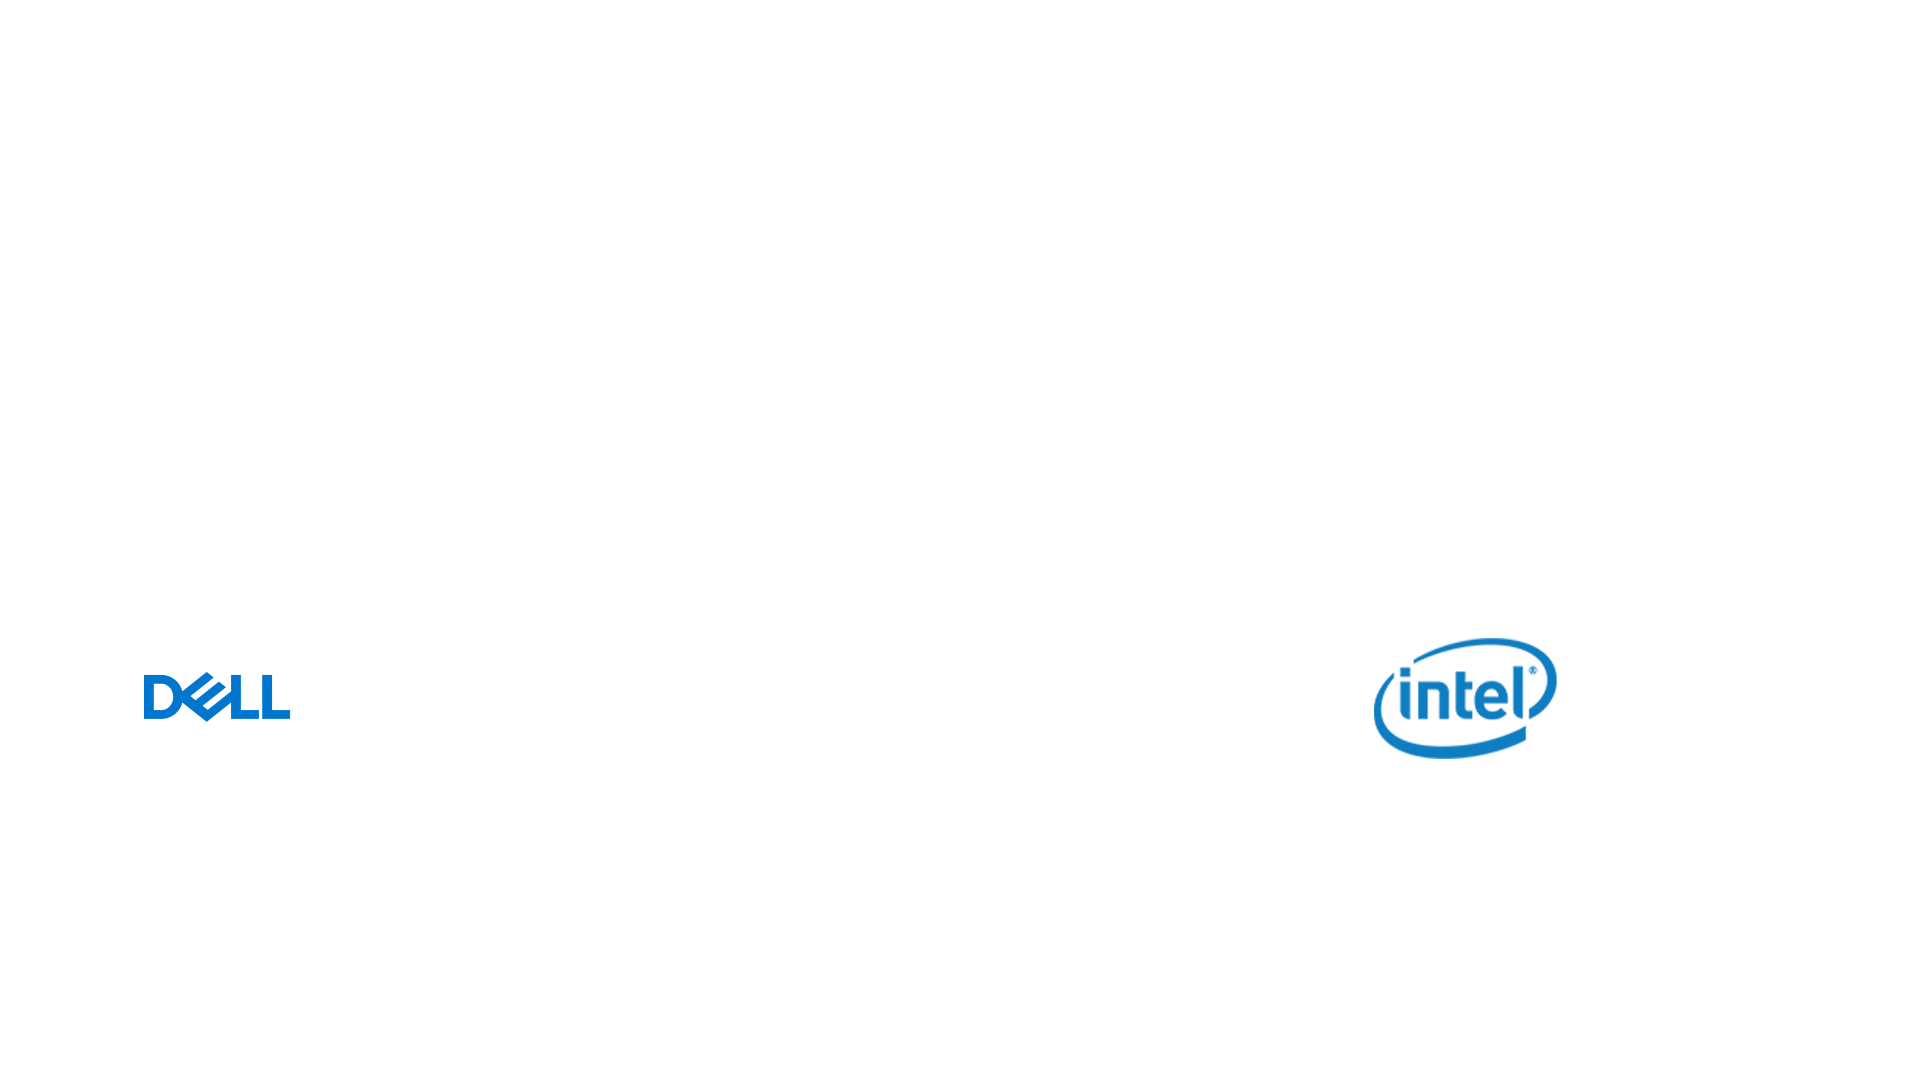 IDC Cloud Innovation Summit, Presented by Dell Technologies